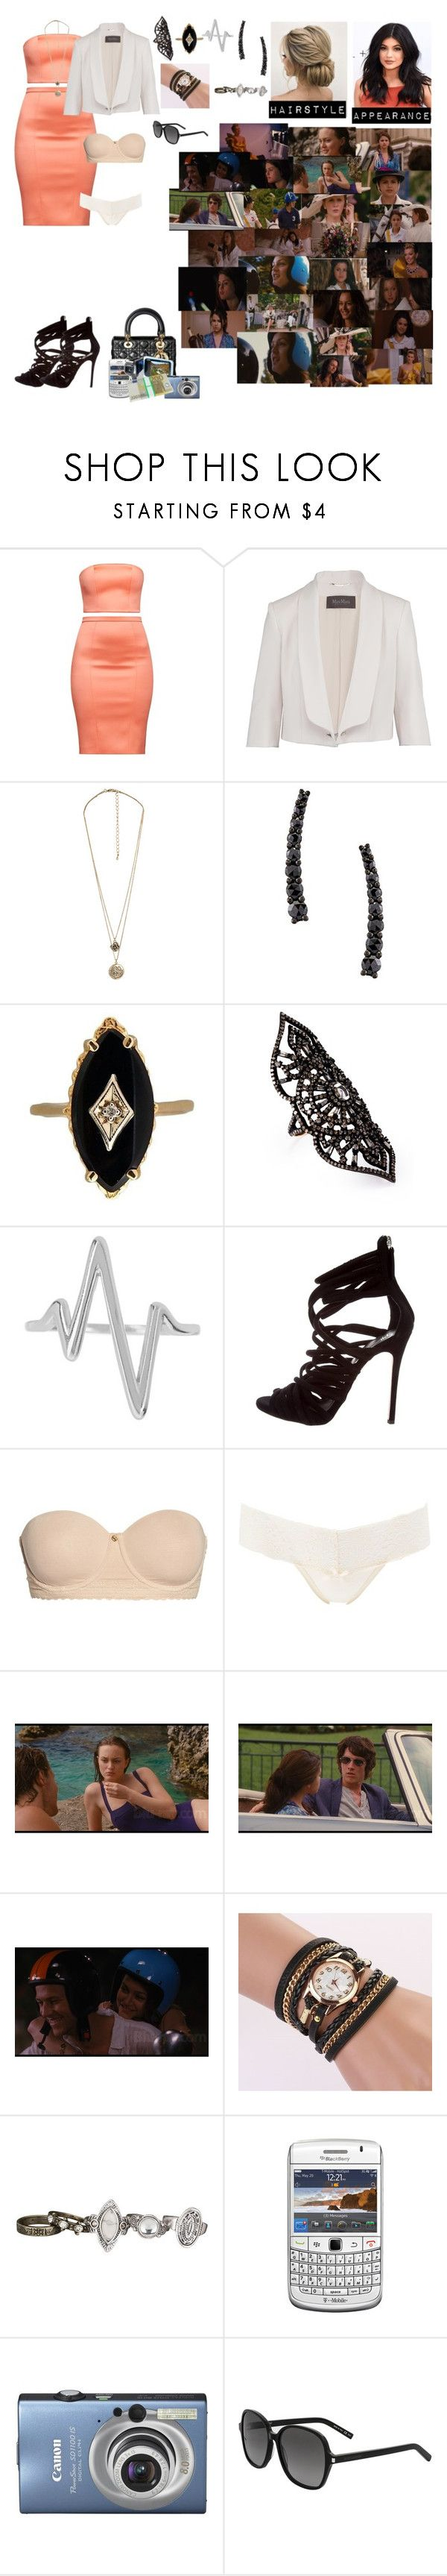 """""""Grace and Lizzie go to the Marchand Charity Polo Match"""" by andyarana ❤ liked on Polyvore featuring MaxMara, Forever 21, Alinka, Amrapali, Sterling Forever, Giuseppe Zanotti, Natori, Charlotte Russe, Monte Carlo and maurices"""